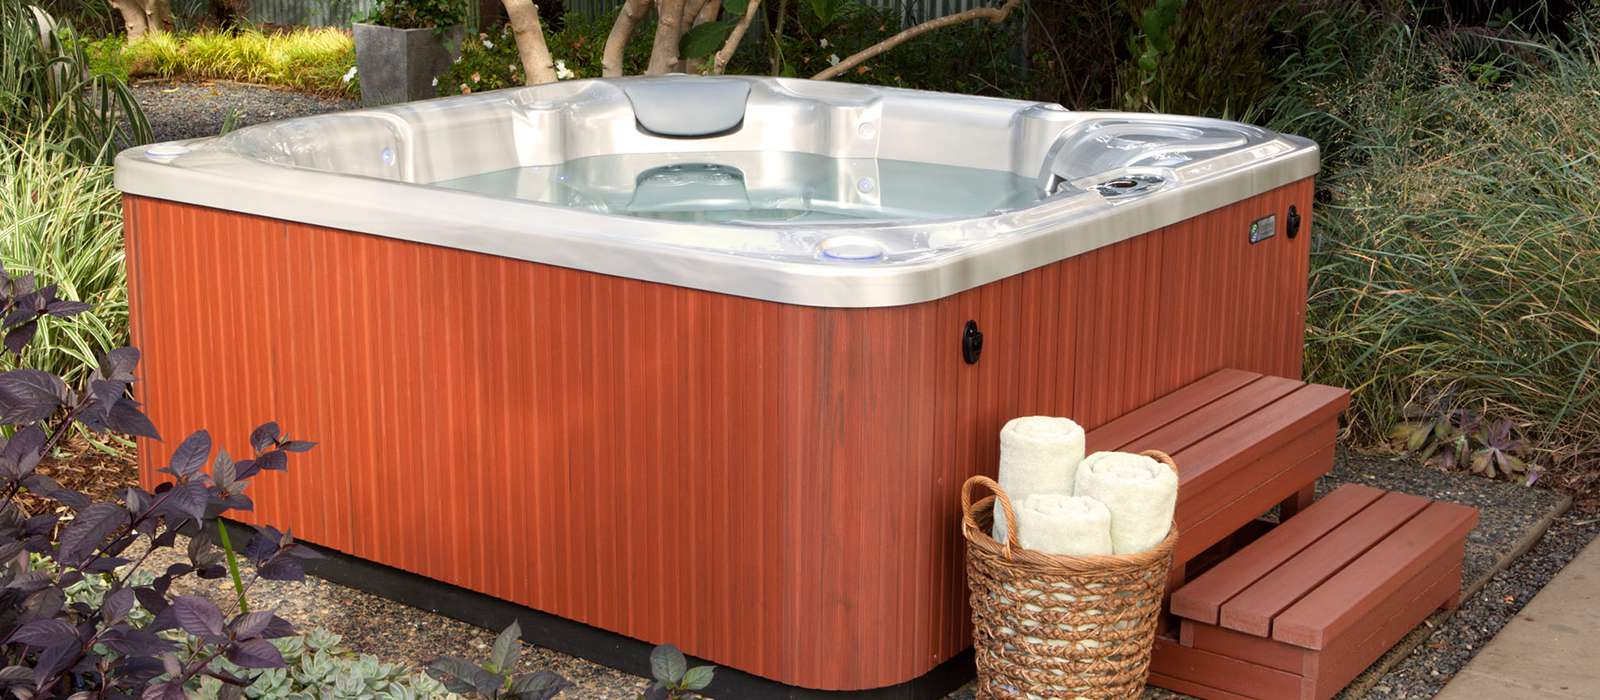 Relax in style with the Bolt hot tub, featuring a sleek cabinet profile and elegant flowing shell. Add spa steps to make it easy for everyone to get in and out of the spa.